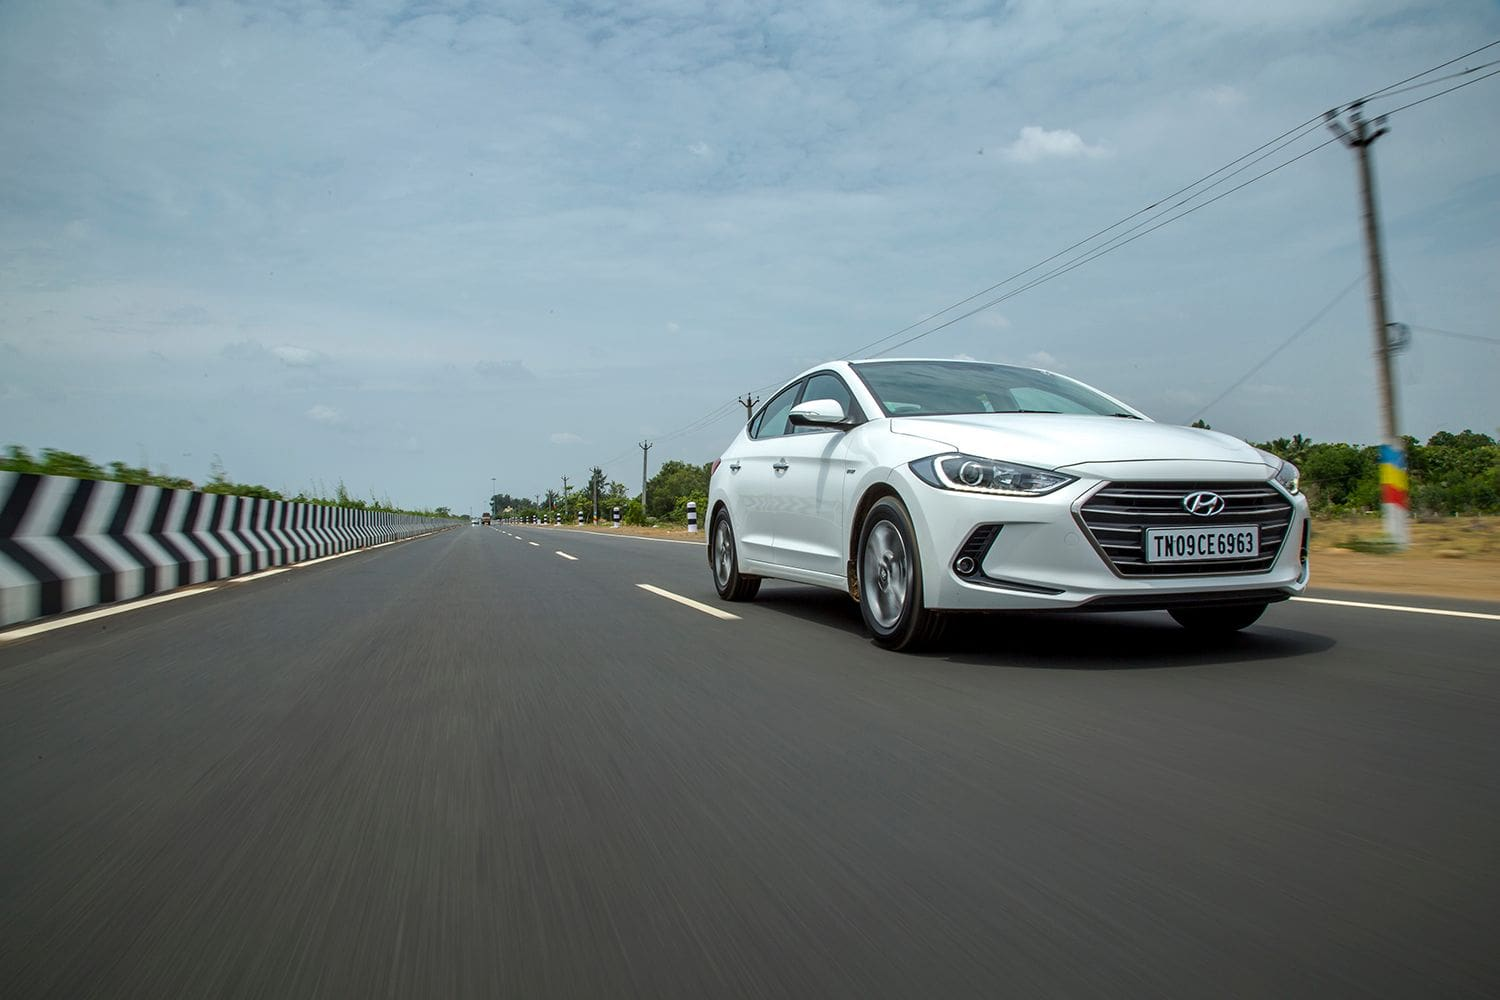 Hyundai Elantra : First Drive Review